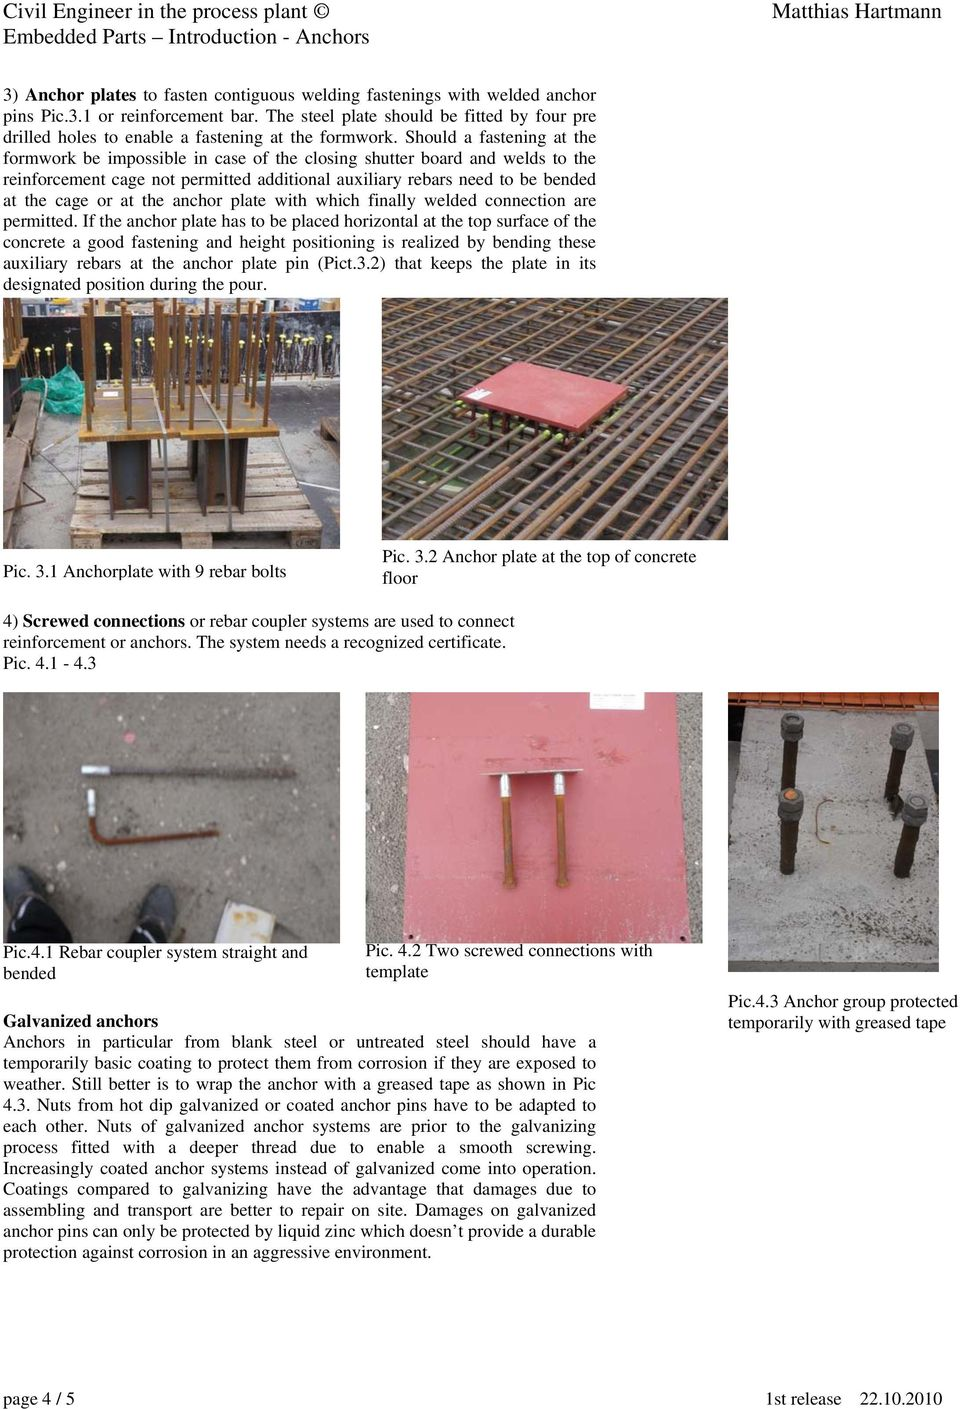 Should a fastening at the formwork be impossible in case of the closing shutter board and welds to the reinforcement cage not permitted additional auxiliary rebars need to be bended at the cage or at